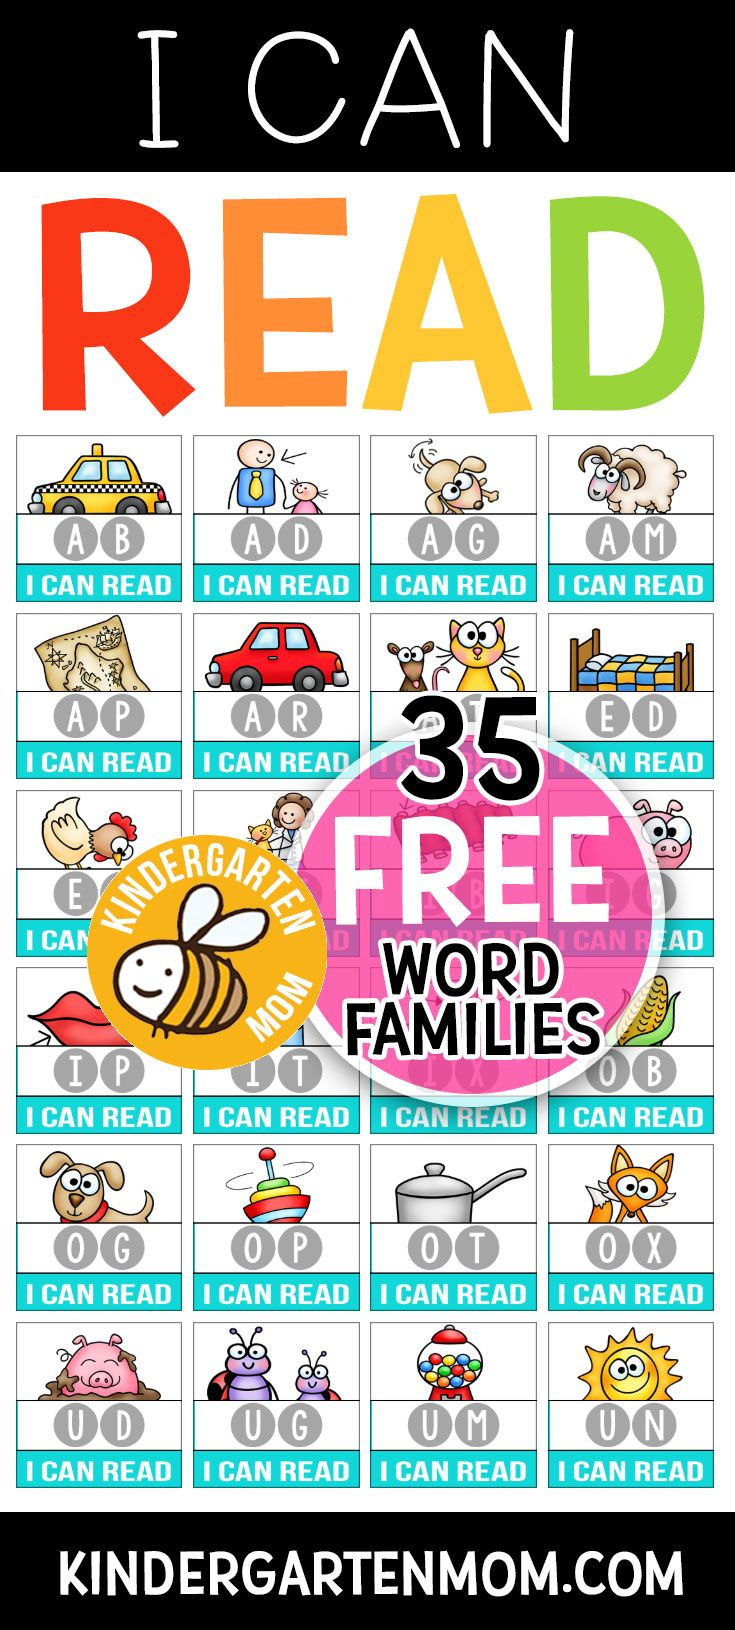 Learn To Read For Free With Kindergarten Mom Free Printables To Teach Your Child To Read Includes Charts Word Families Kindergarten Reading Phonics Reading [ 1630 x 735 Pixel ]